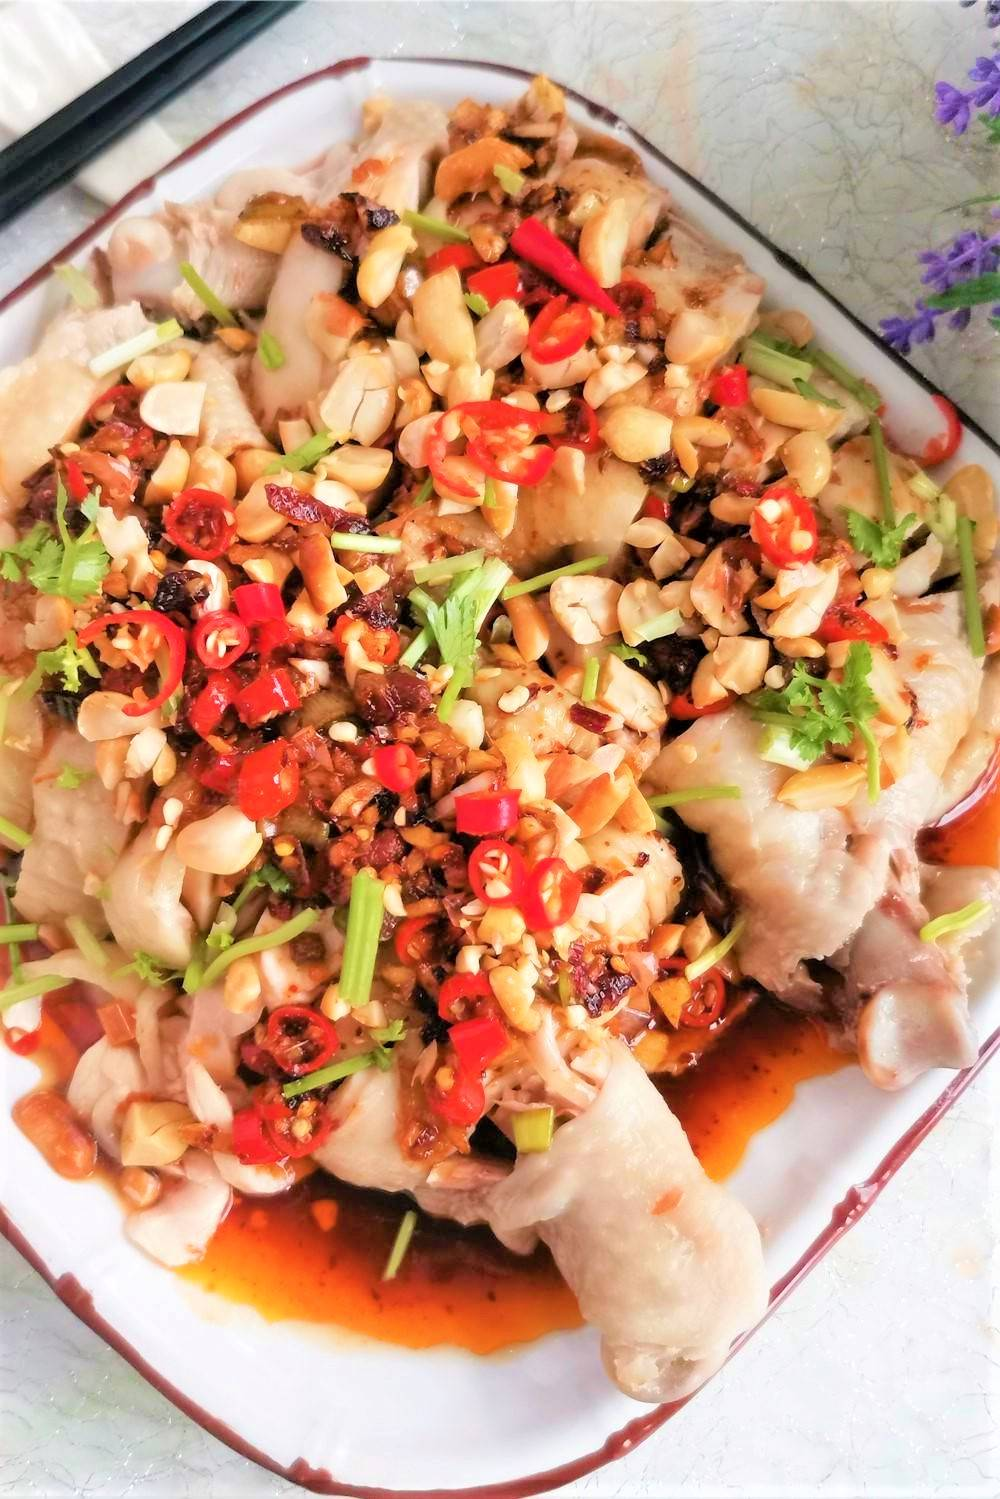 Spicy cold chicken legs chicken drumsticks in chili sauce salad China food Chinese homemade dish recipe